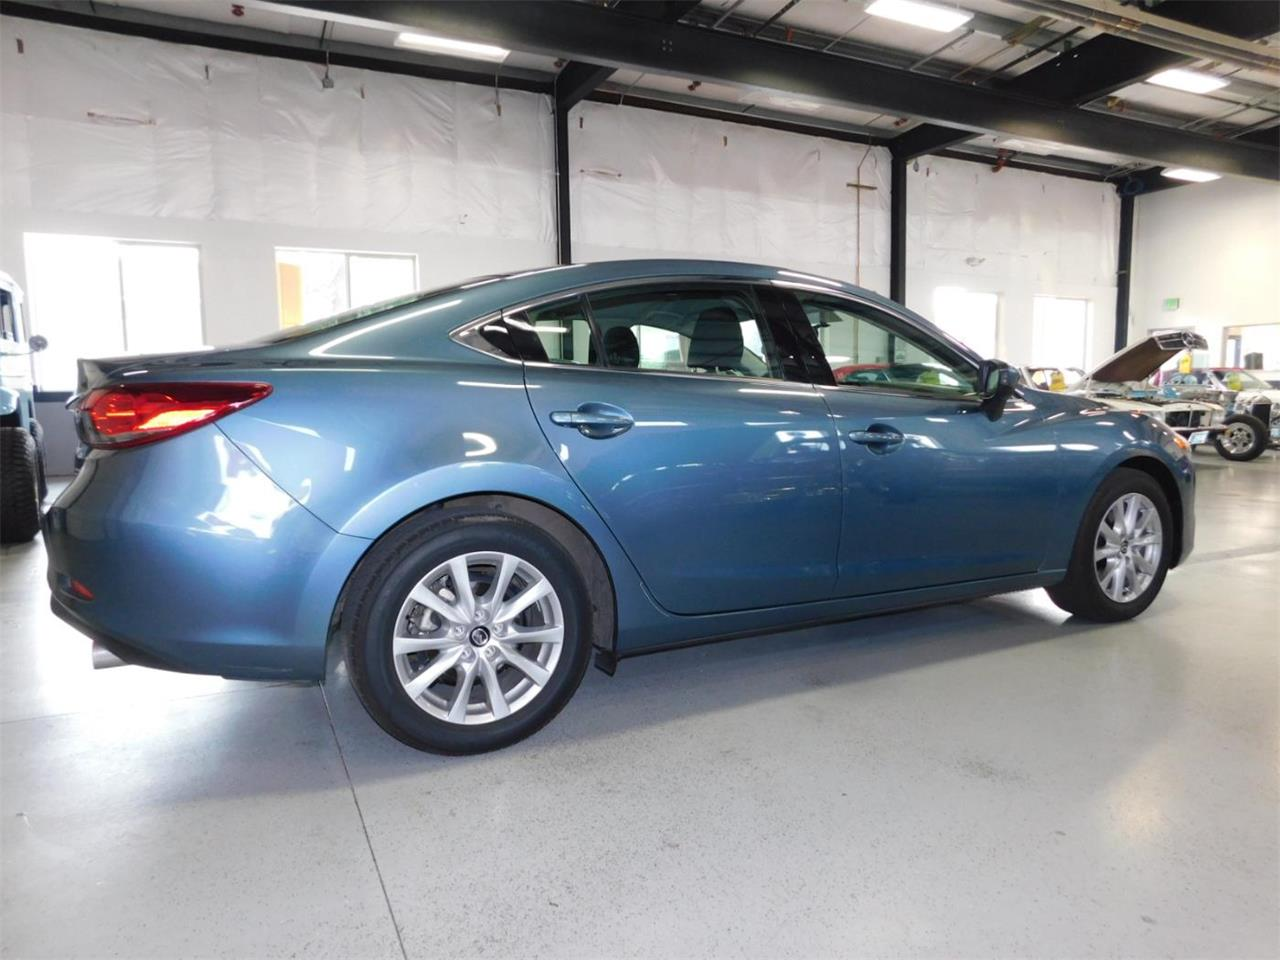 Large Picture of 2015 Mazda Mazda6 located in Oregon - $15,995.00 - LRNC